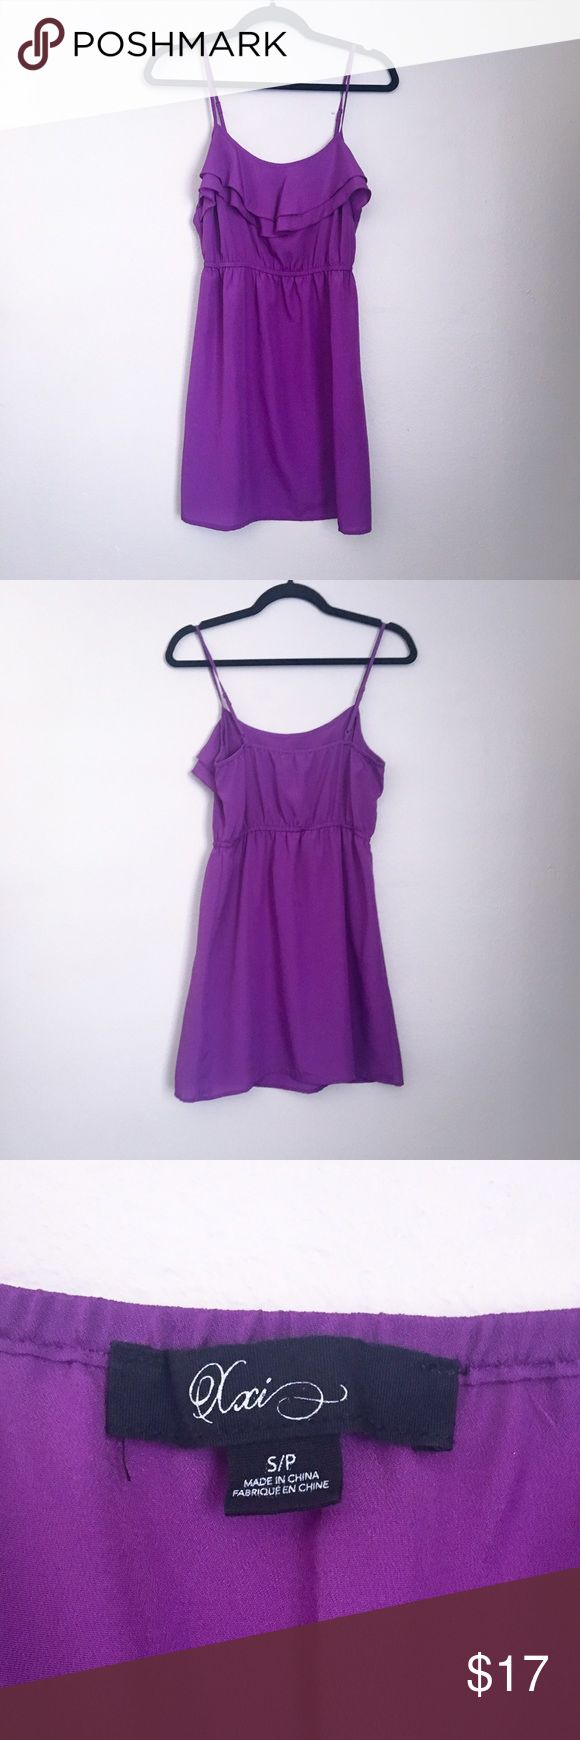 Pretty Purple Sundress Forever 21 XXI - Purple Sundress - Great dress for casual summer days or dress it up with a pair of heels for a night out on the town. Elasticized waistband for comfort and pretty layered neckline.  Love this color paired with a denim jacket!! Forever 21 Dresses